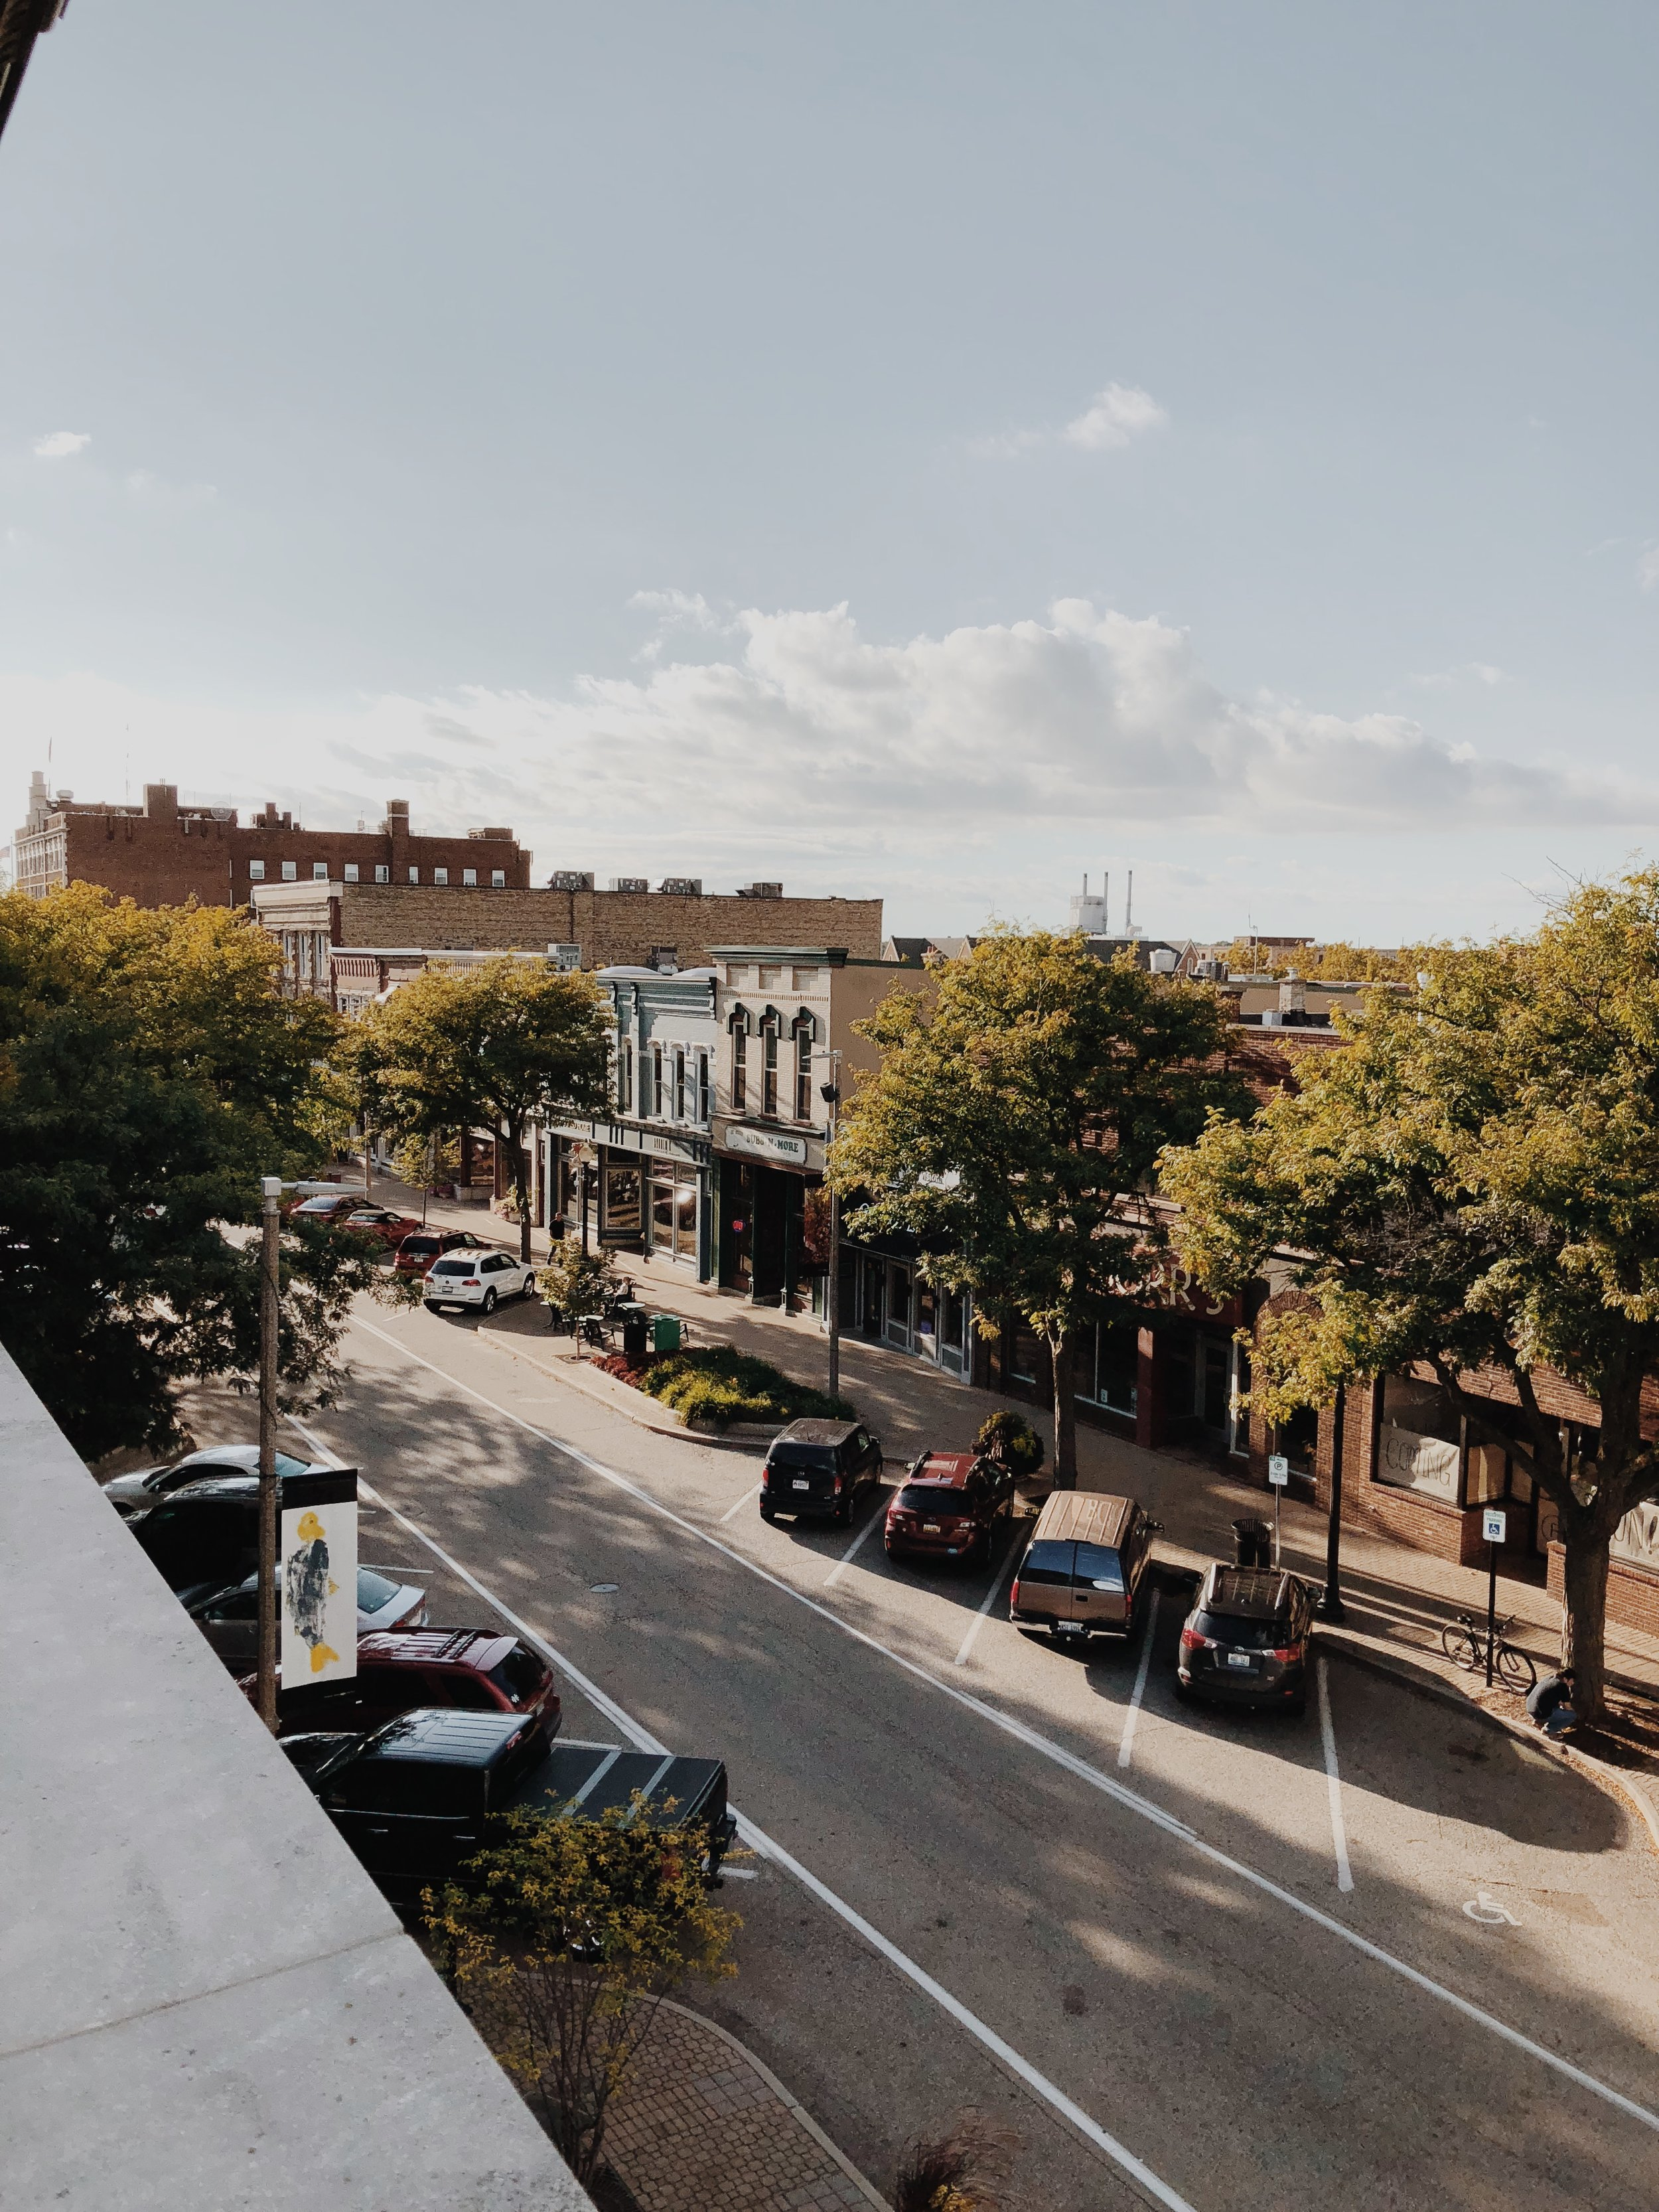 Downtown Holland as the season of Autumn Approaches.